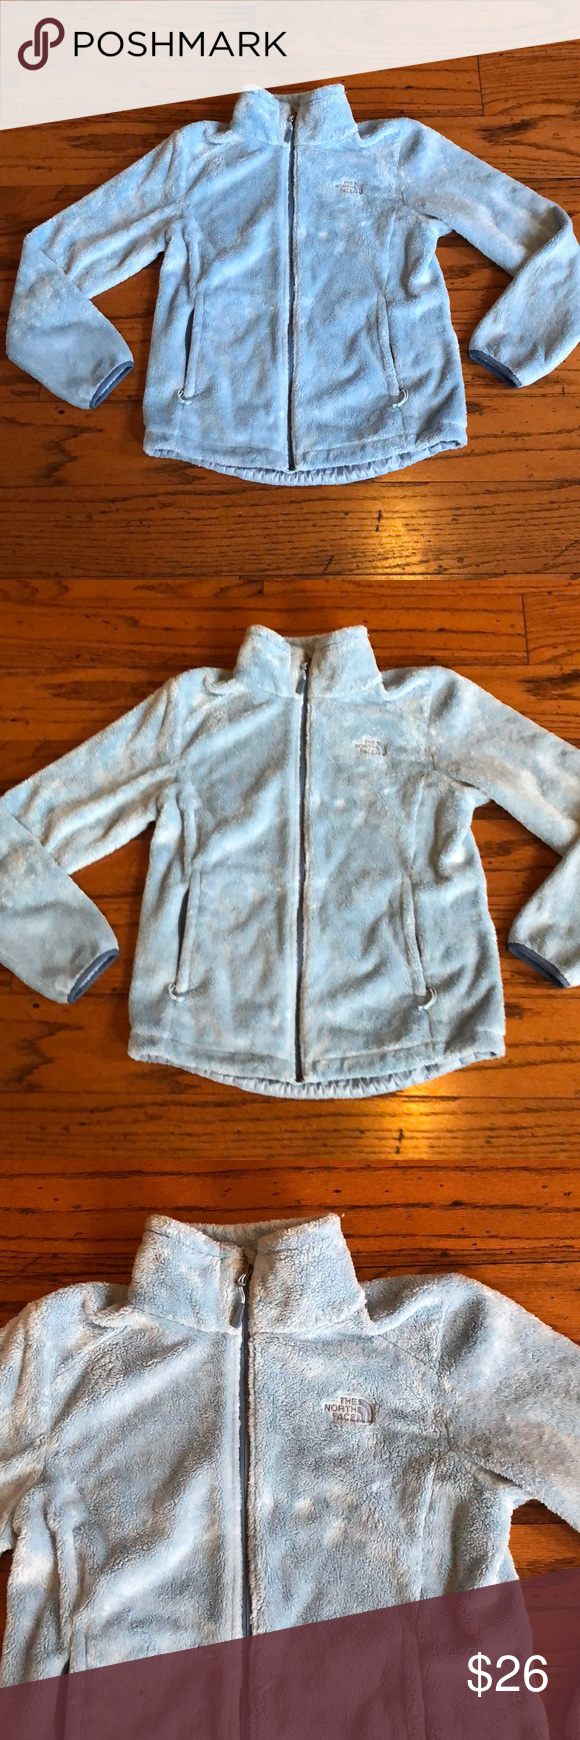 The North Face Baby Blue Osito Fuzzy Jacket Sz M Fuzzy Jacket The North Face North Face Jacket [ 1740 x 580 Pixel ]